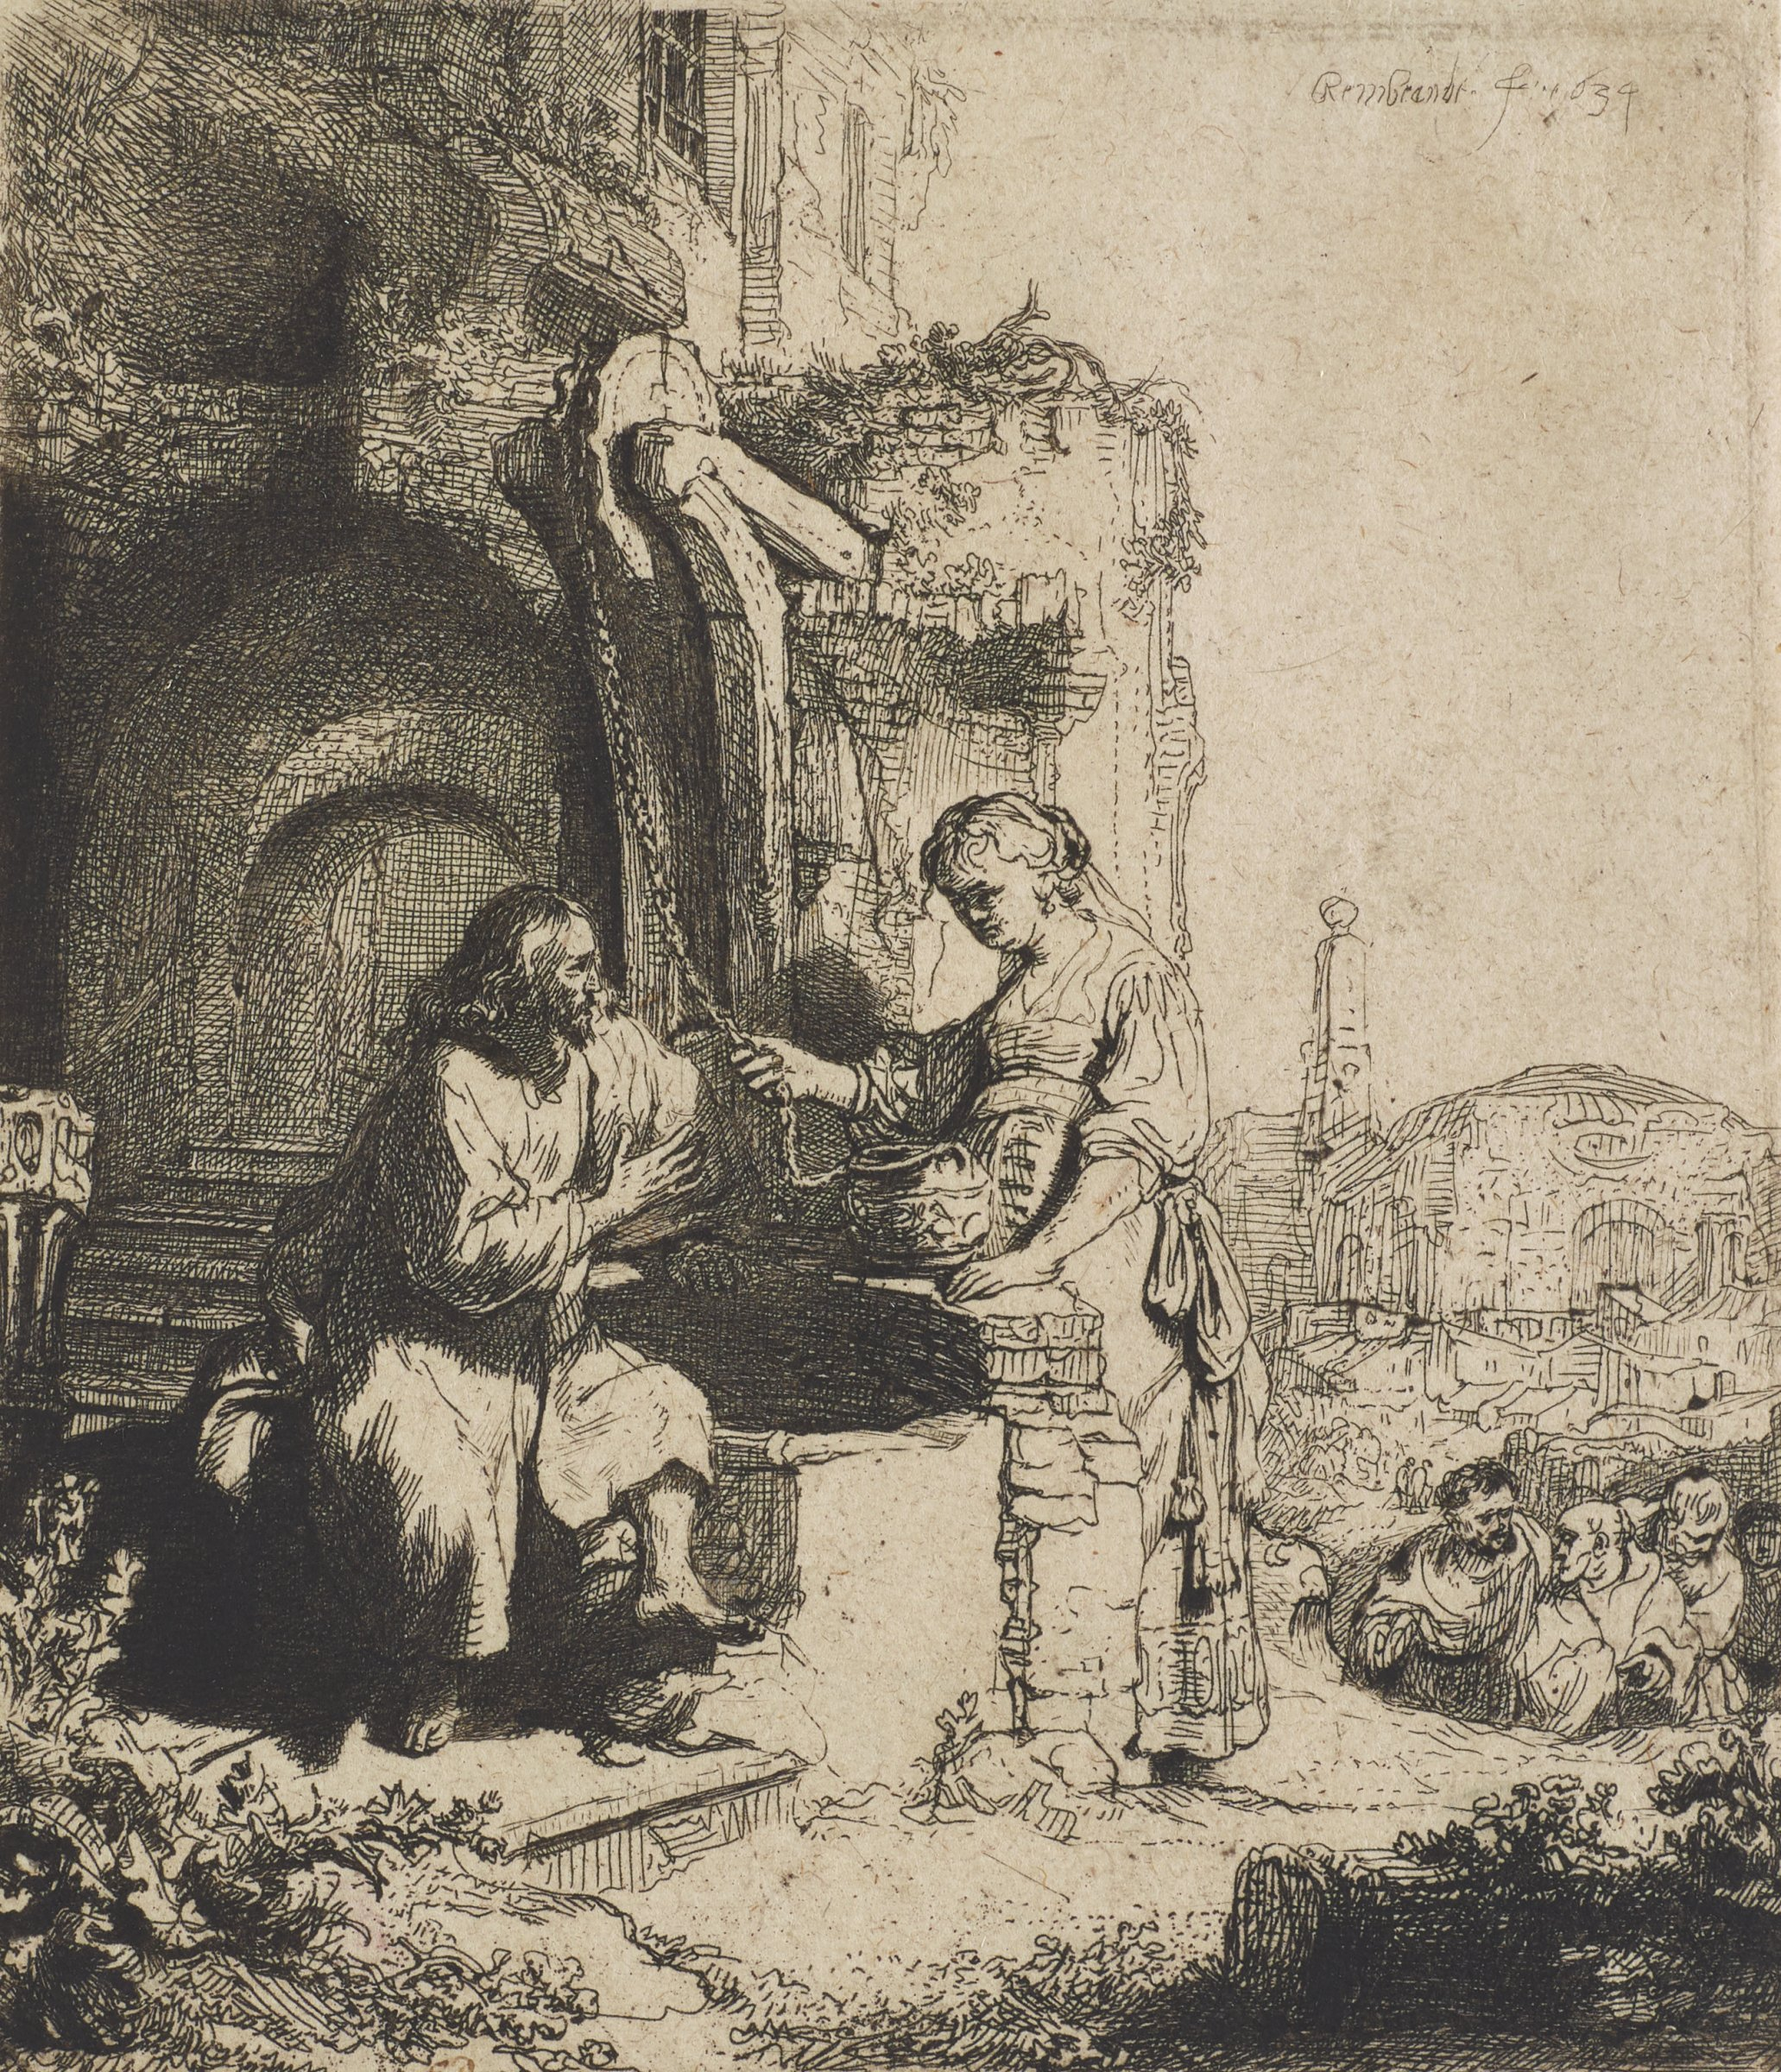 Jesus sits on the side of a well as the Samarian woman stands holding a rope connected to her water jug. Jesus leans towards her in conversation. On the right a group of figures converse with one another as if discussing the scene unfolding before them.